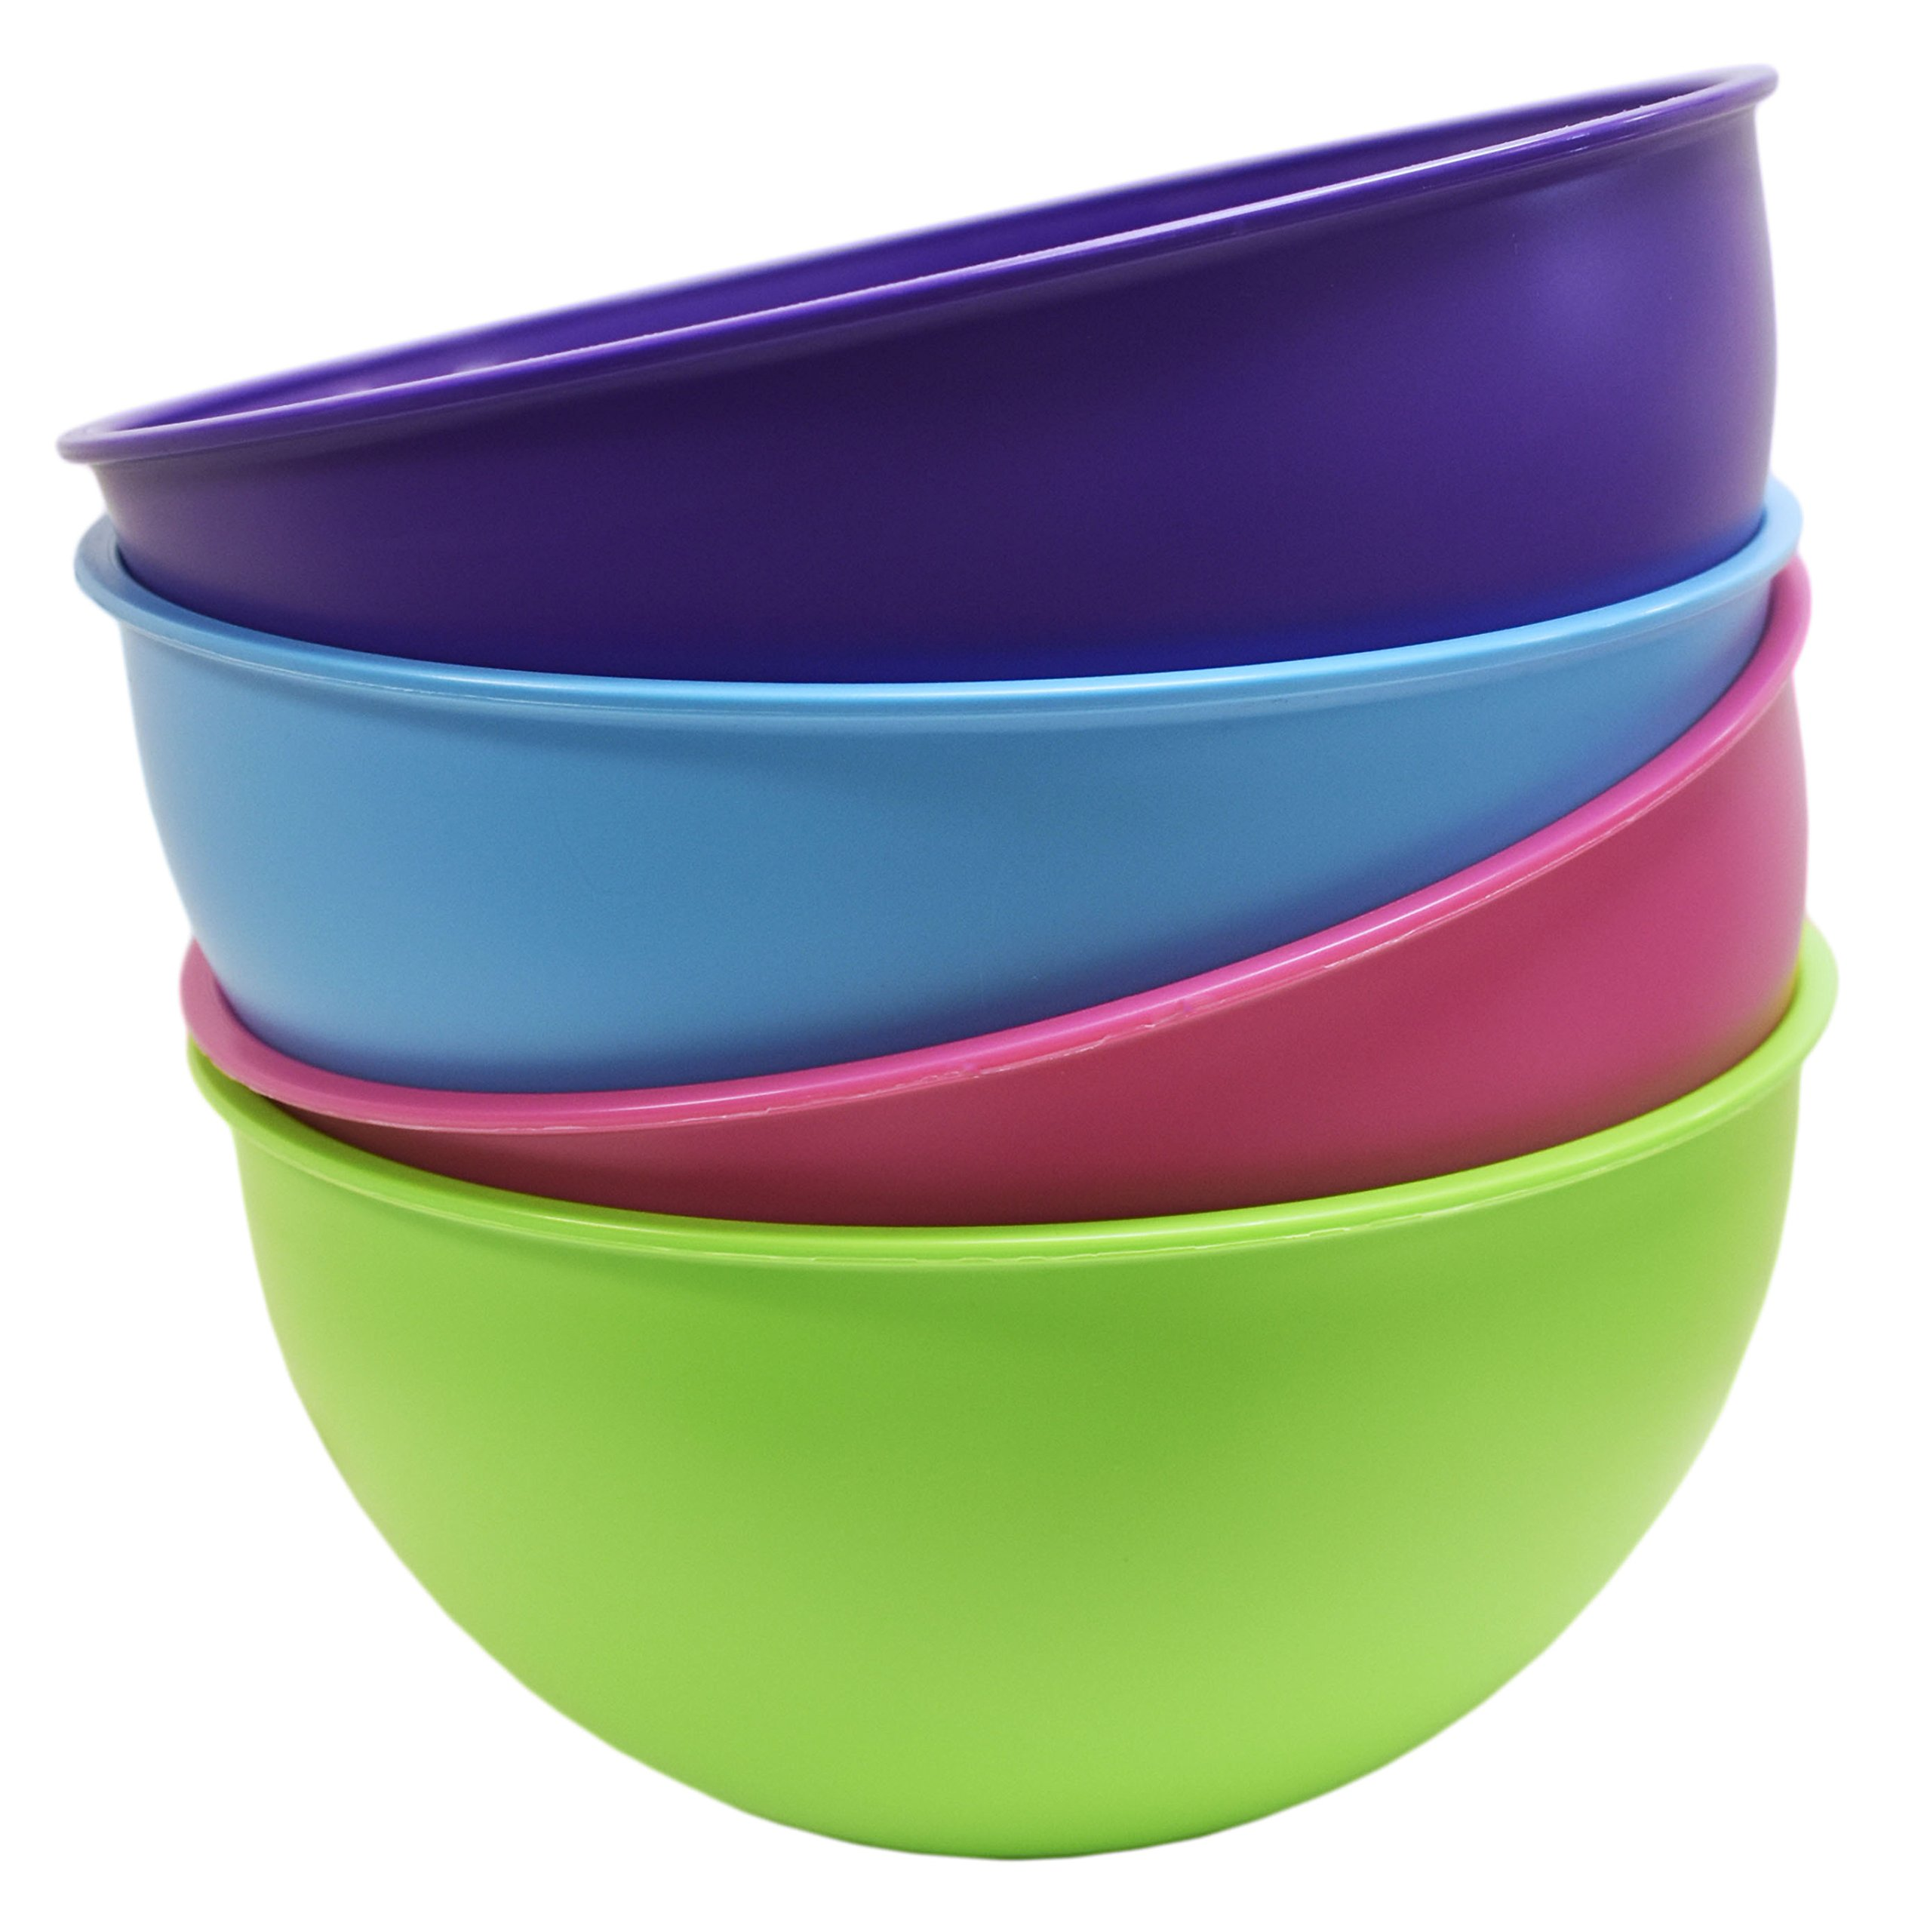 """Set of 4 Bright & Beautiful Prep Bowls! Pink, Green, Purple, Blue - BPA Free - Dishwasher Safe - 84.5 FL OZ - 8.25"""" x 4.25"""" - Bowls Perfect for Mixing, Serving, Utility, Parties, & More!"""